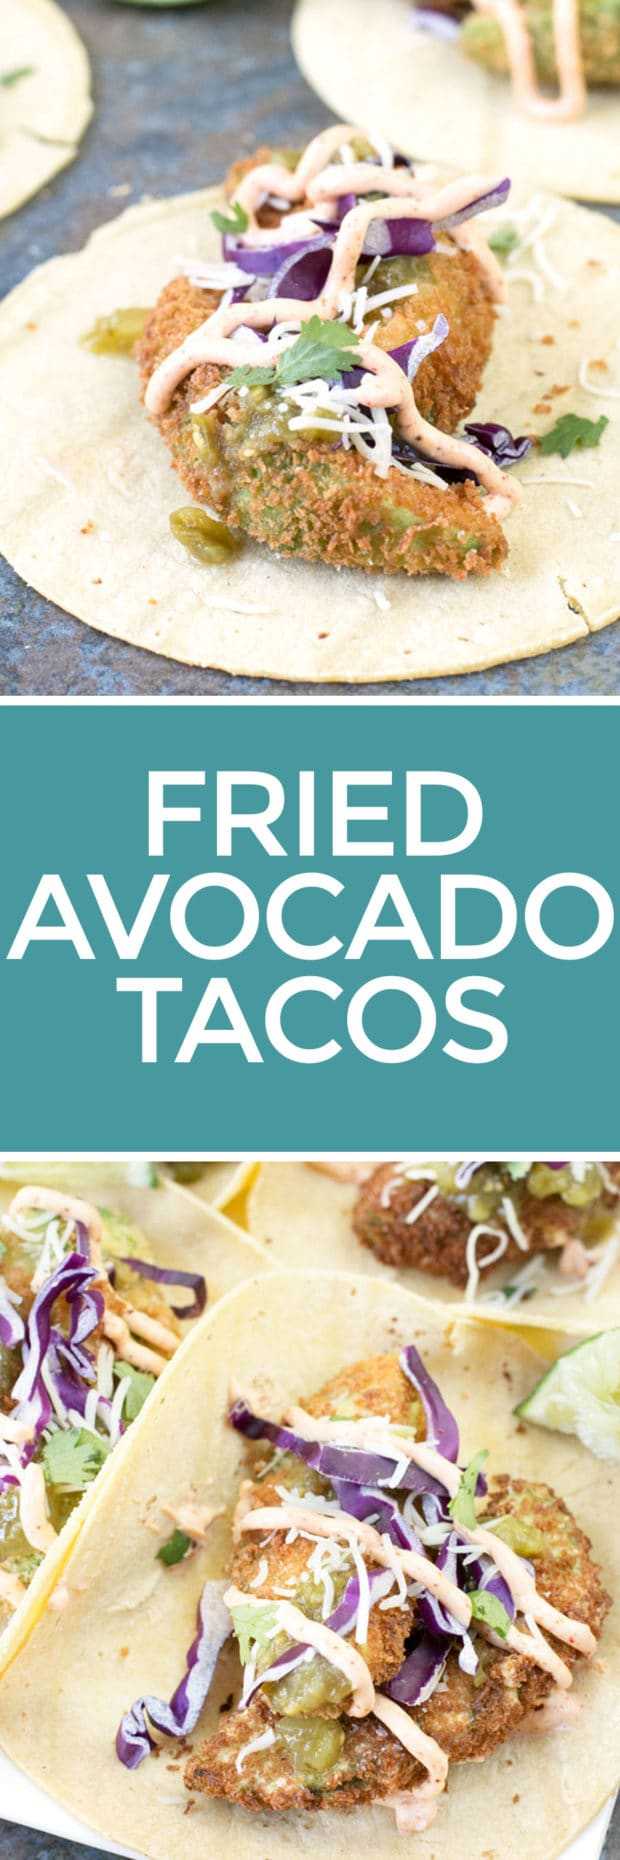 Fried Avocado Tacos | cakenknife.com